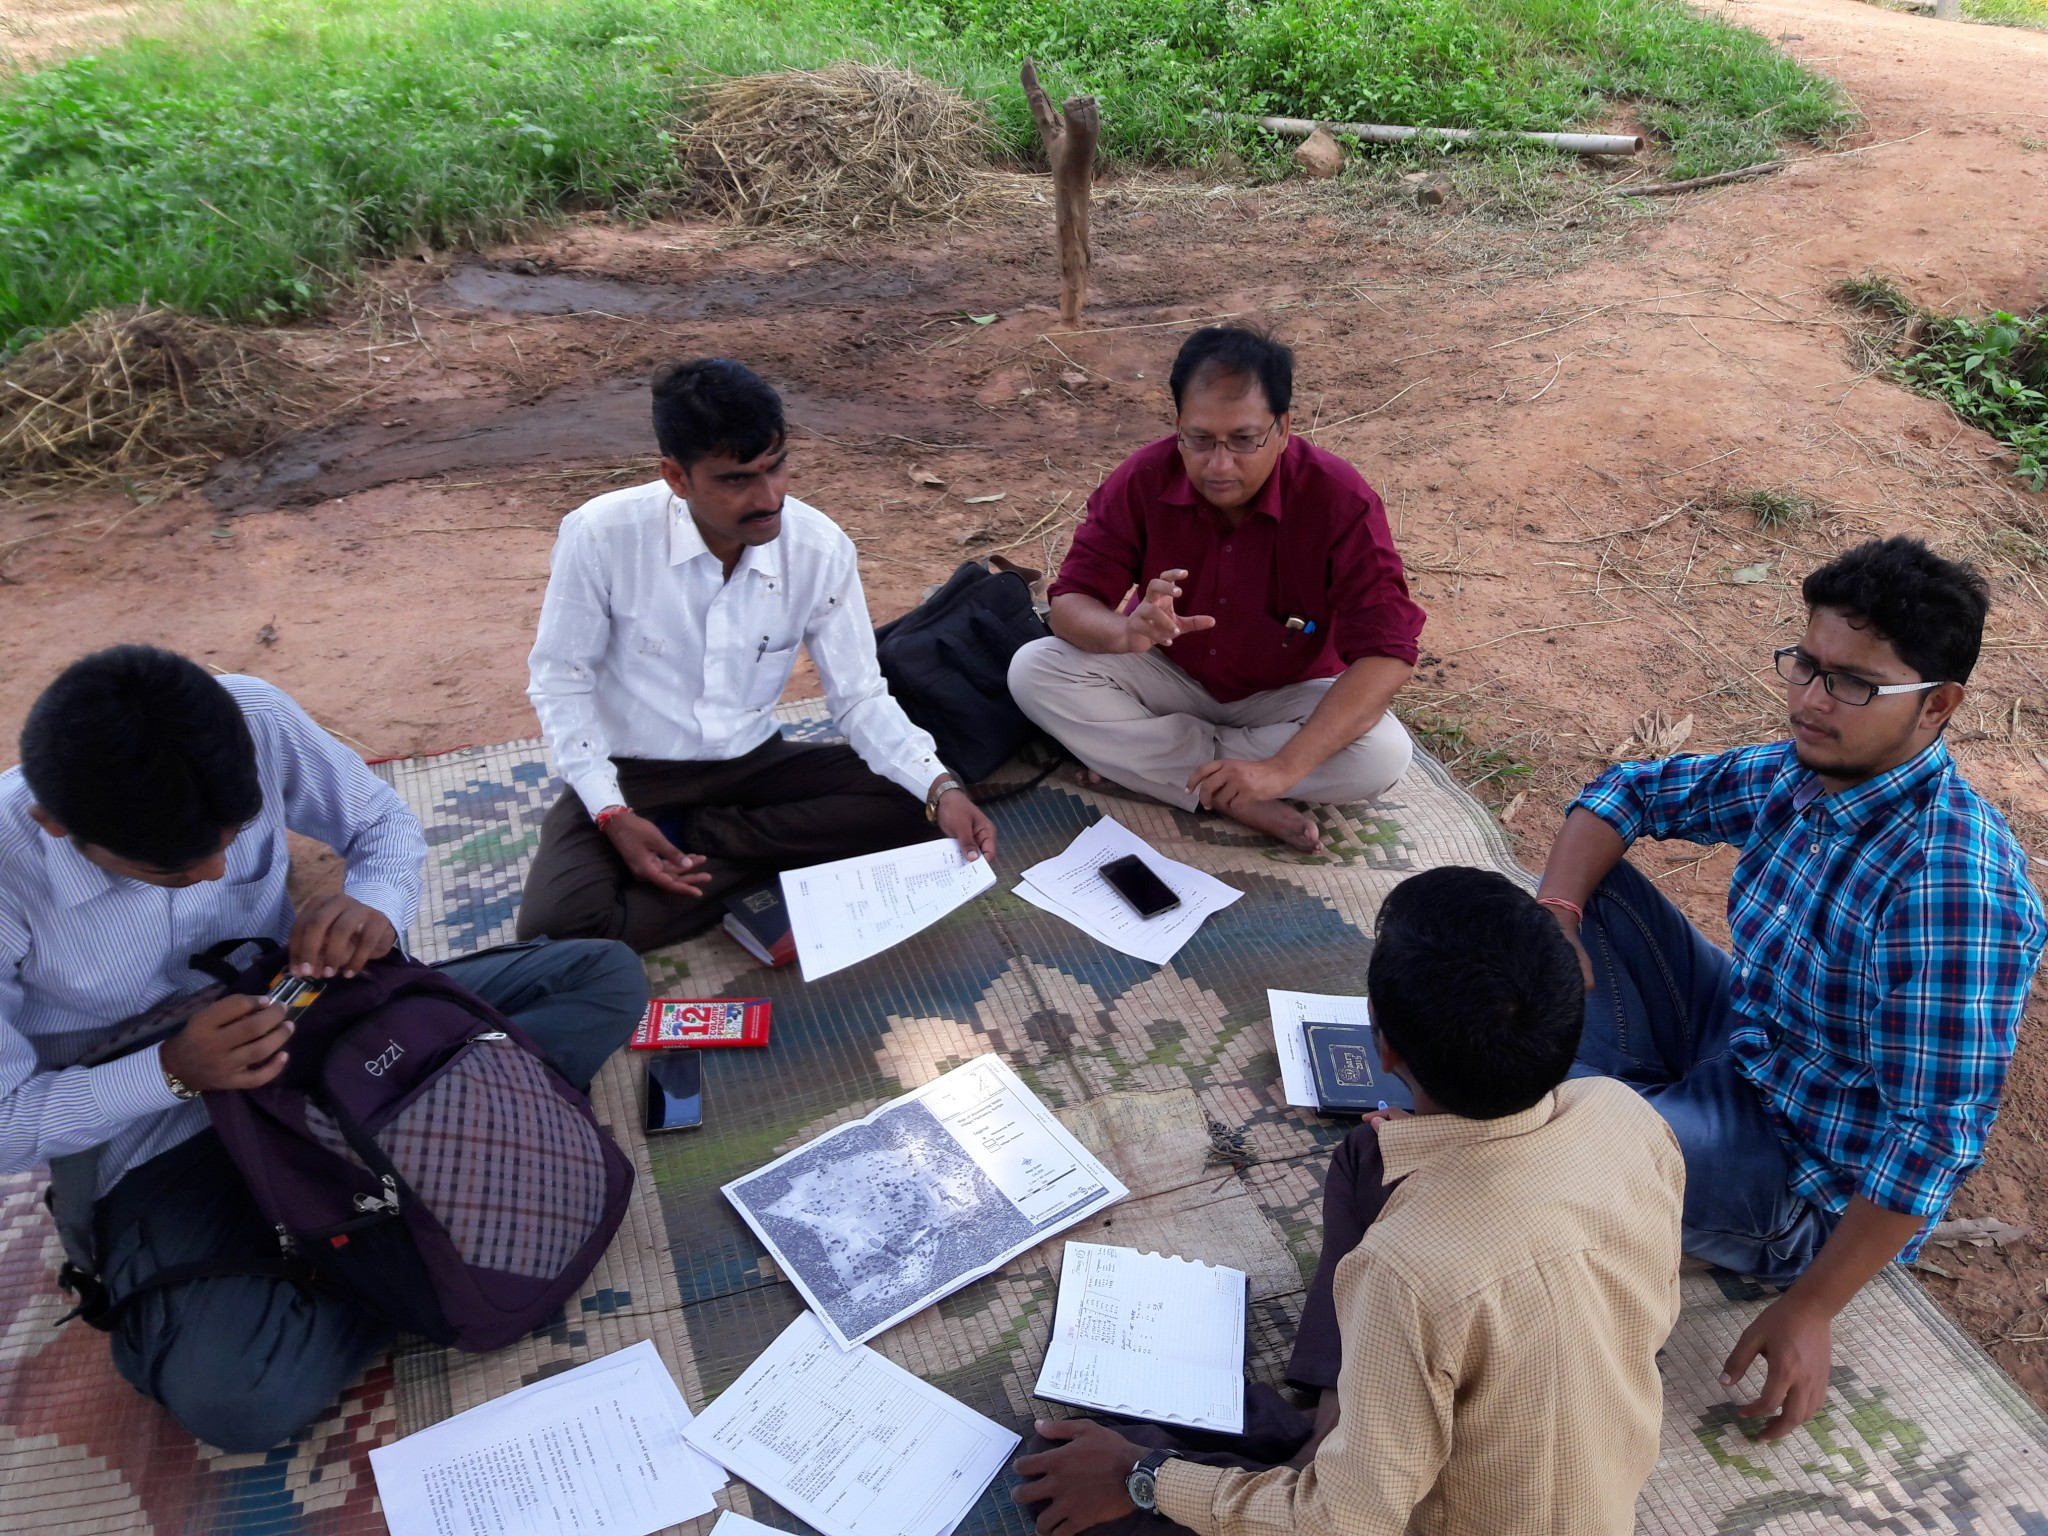 Participatory Ground Water Management (PGWM) with the ACT team, Gujarat